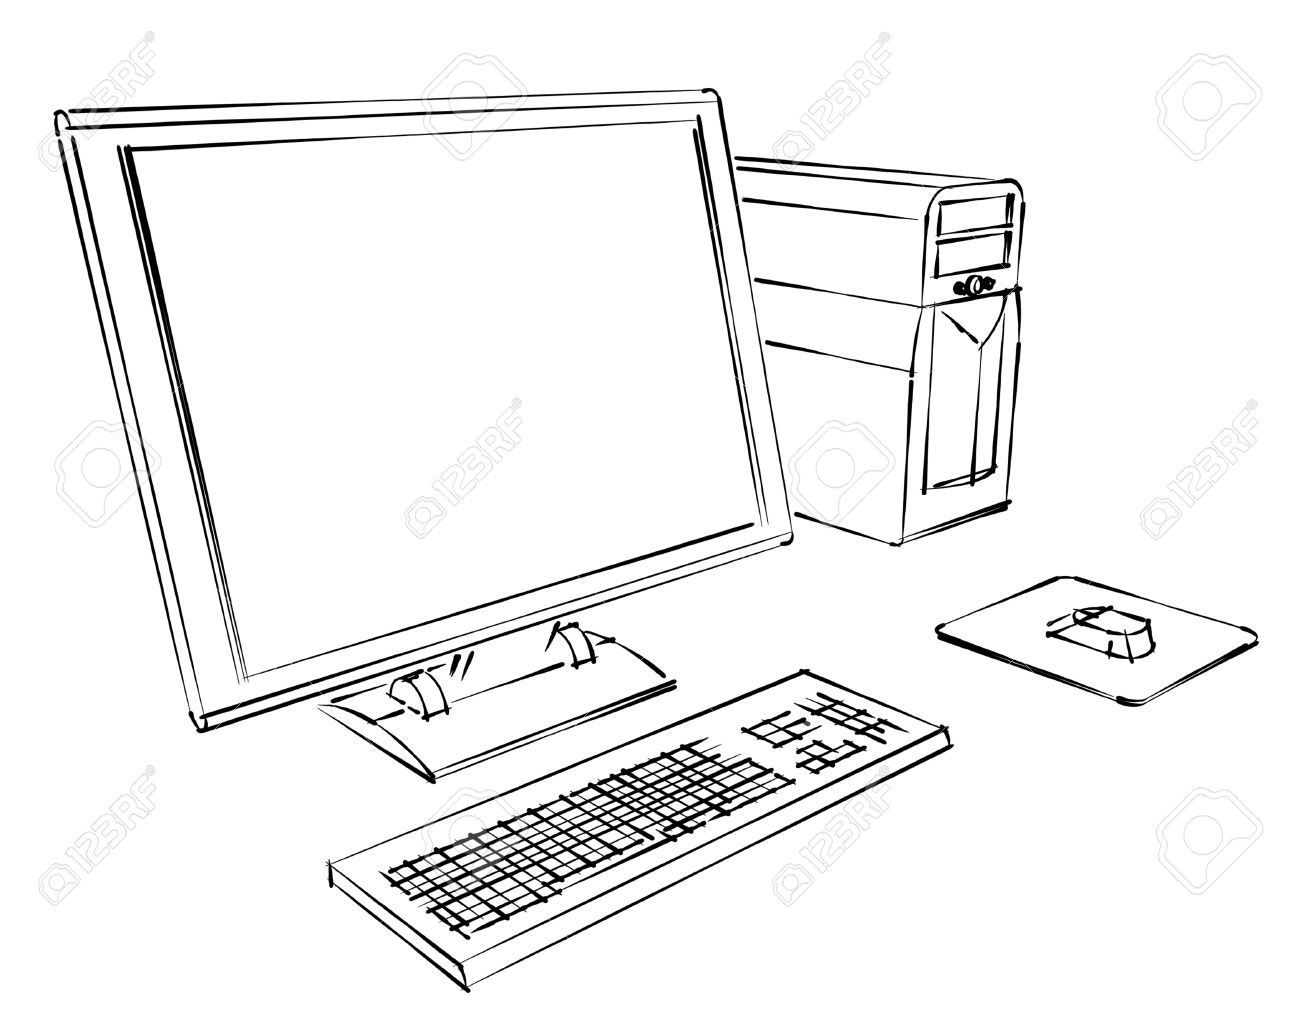 1300x1034 Desktop Computer Abstract Sketch Stock Photo, Picture And Royalty